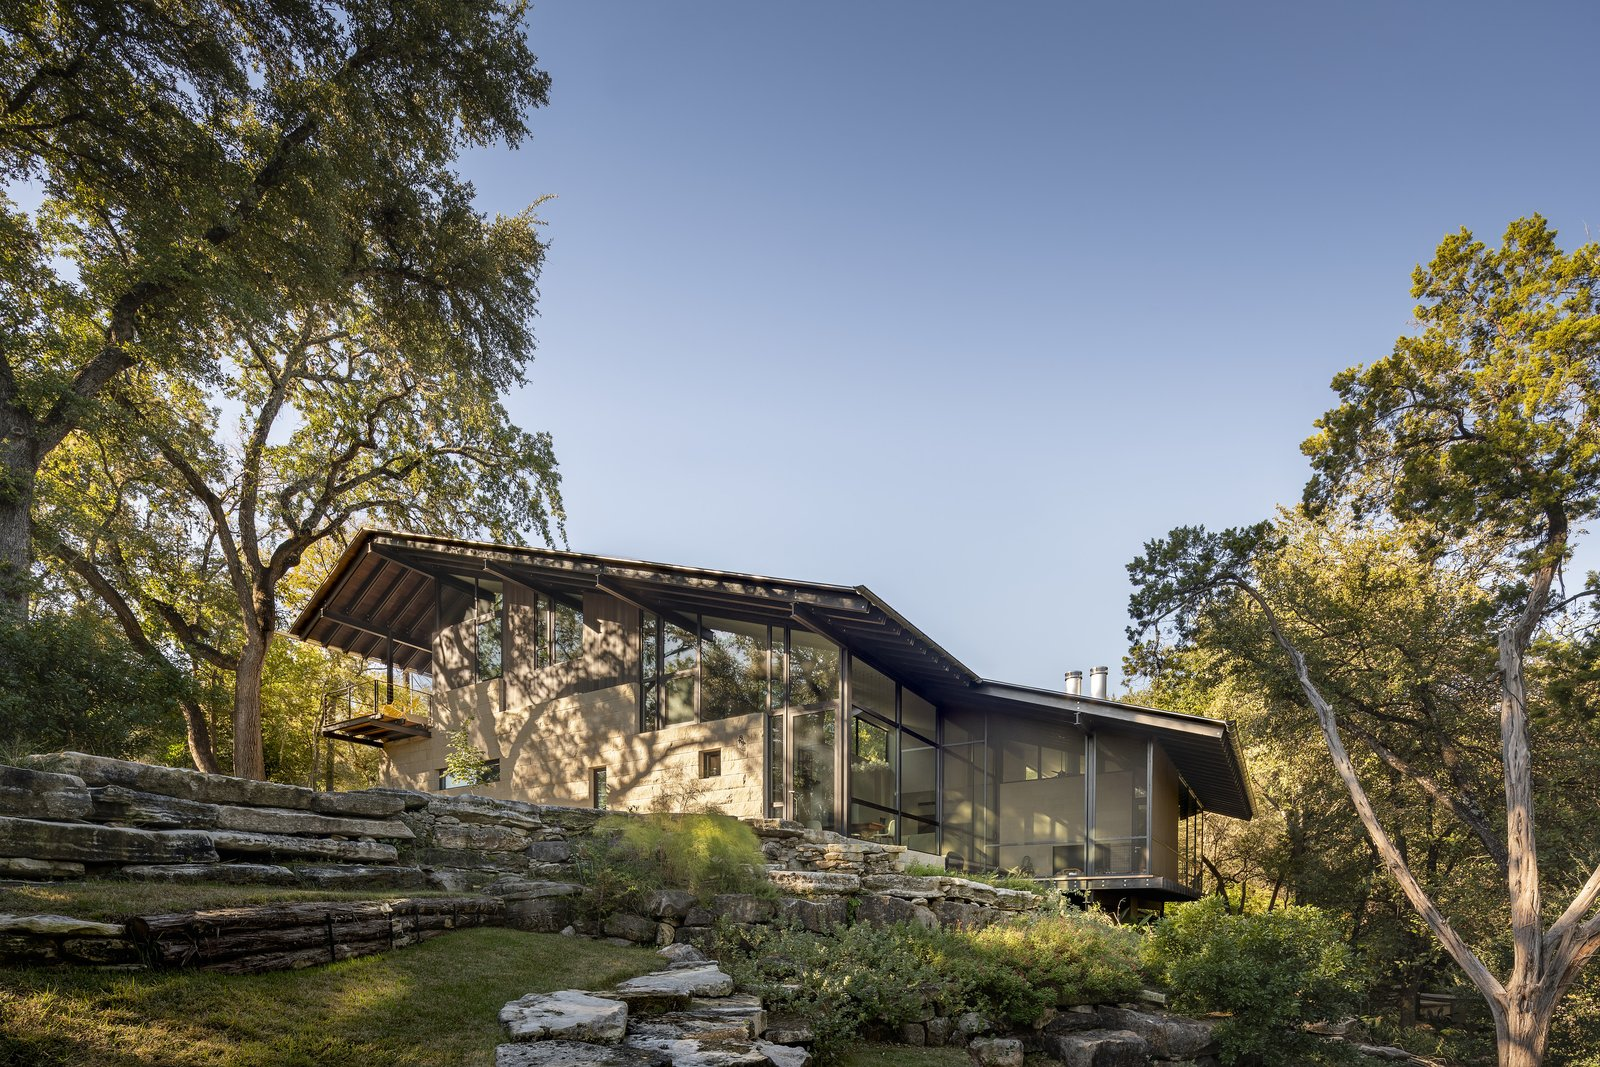 A path of restored rock ledges leads to a dry creek, amphitheater, and private gathering space.